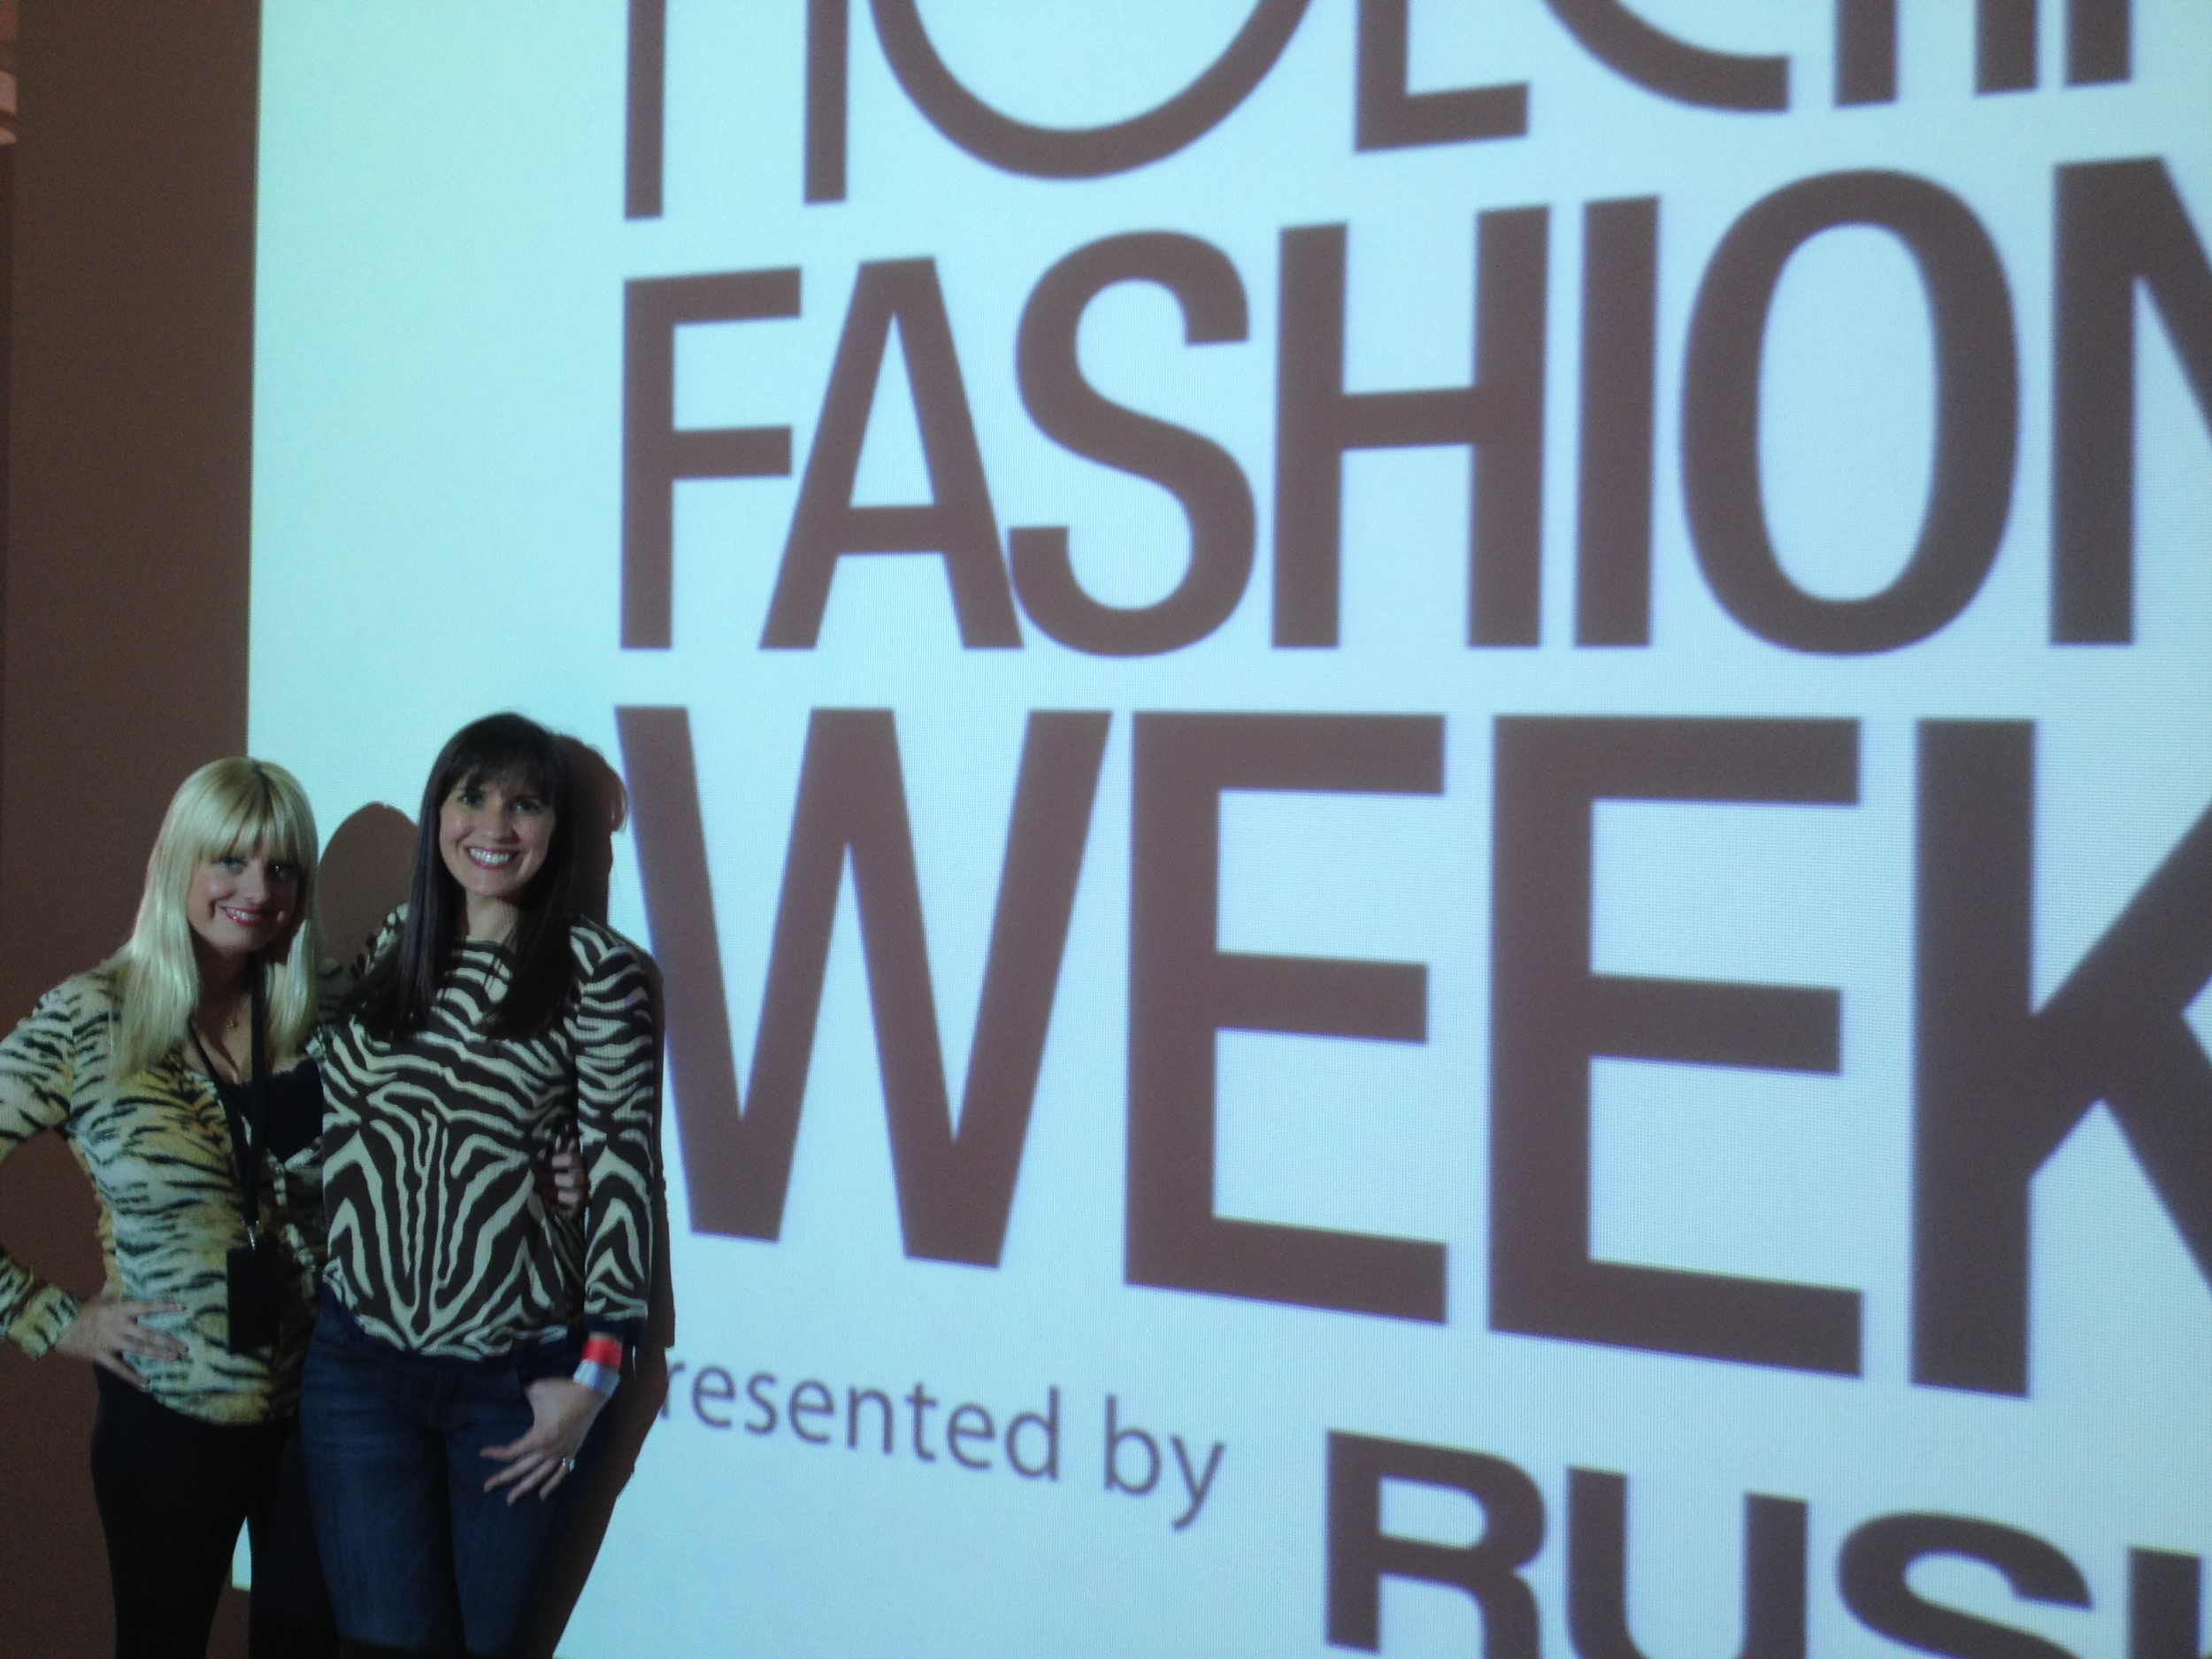 NOLCHA Founder Kerry Bannigan and Hilary Phelps